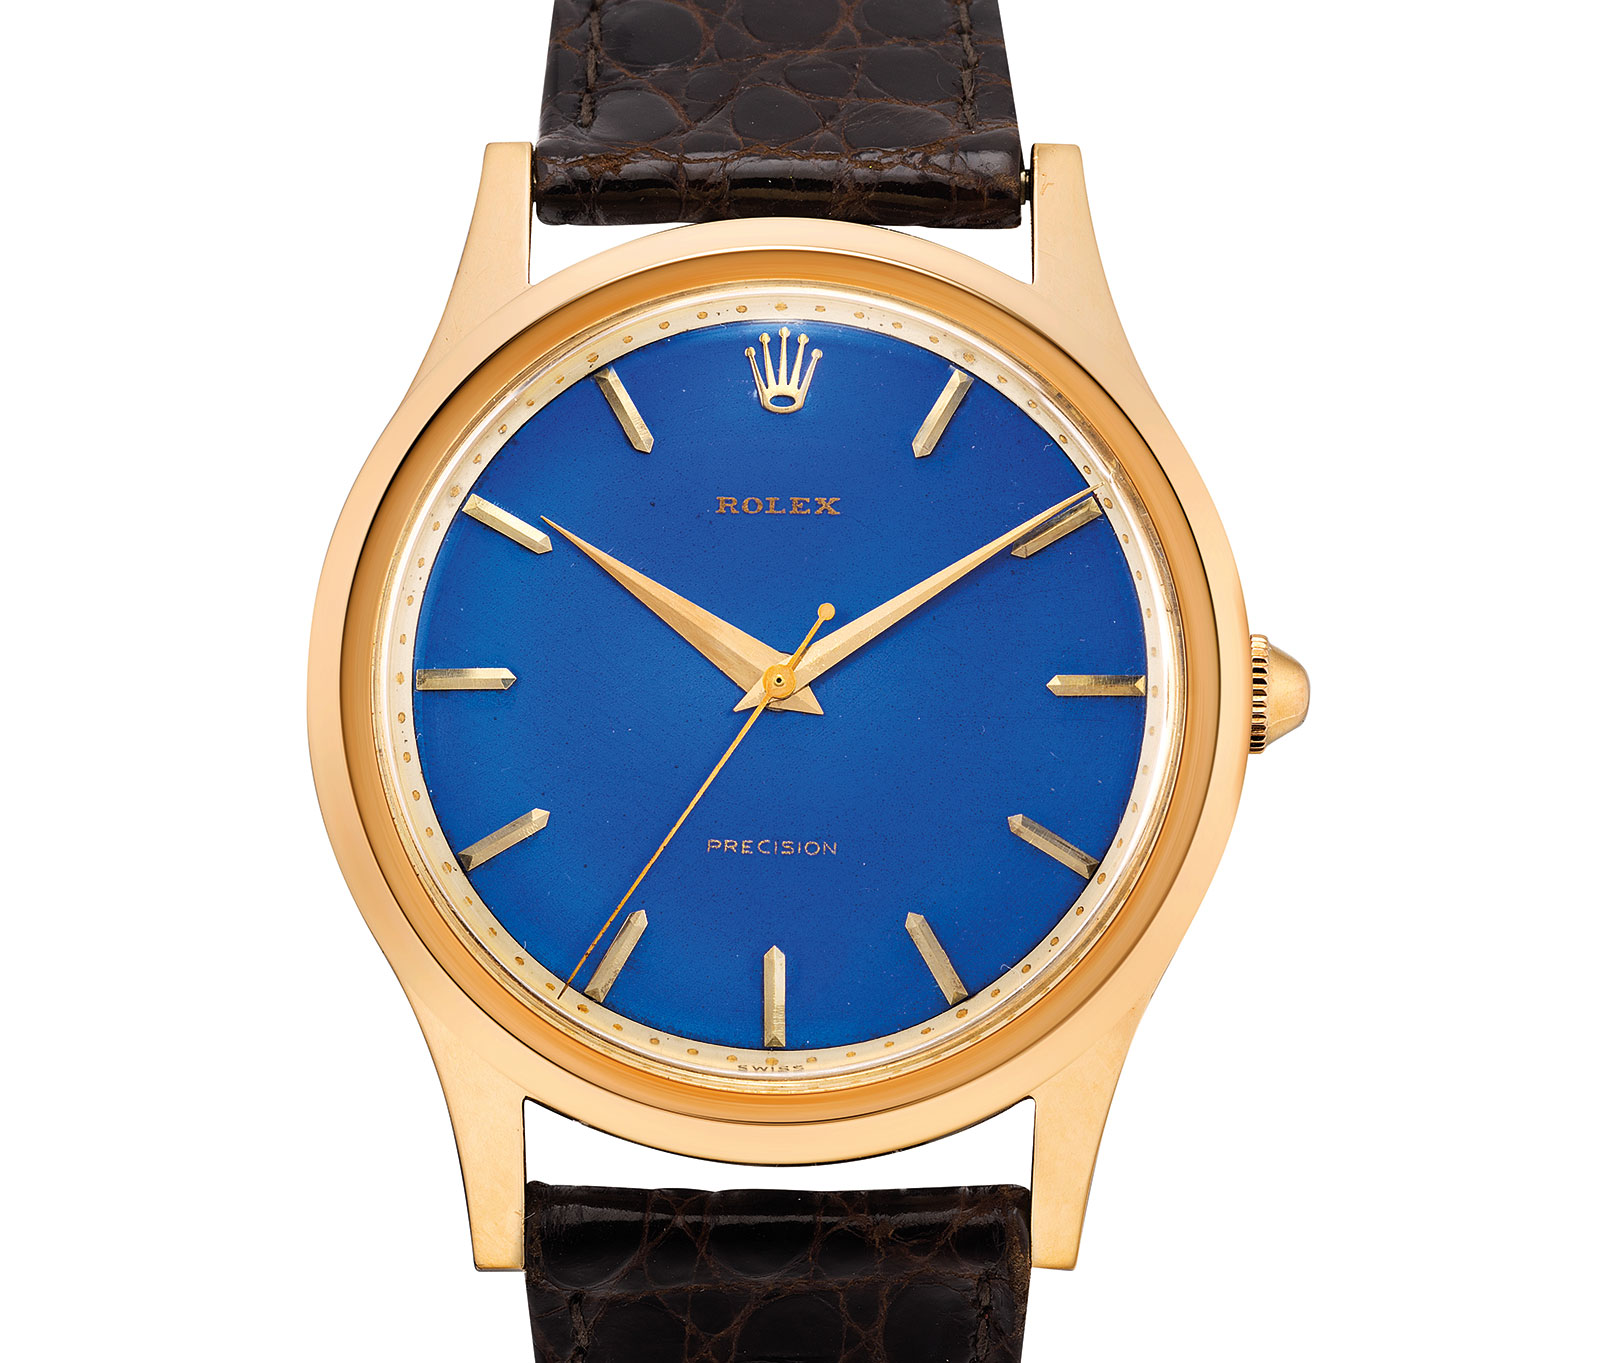 Phillips The Hong Kong Watch Auction Two Highlights 4